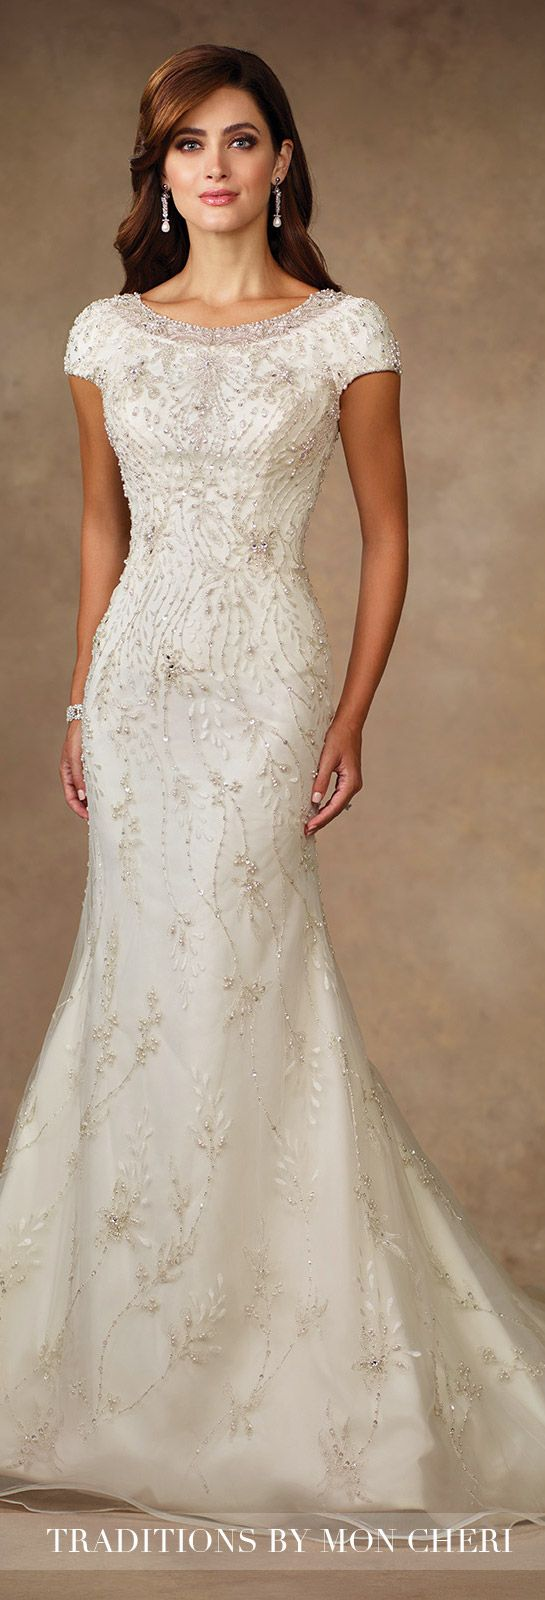 Wedding Dress - Traditions by Mon Cheri 2017